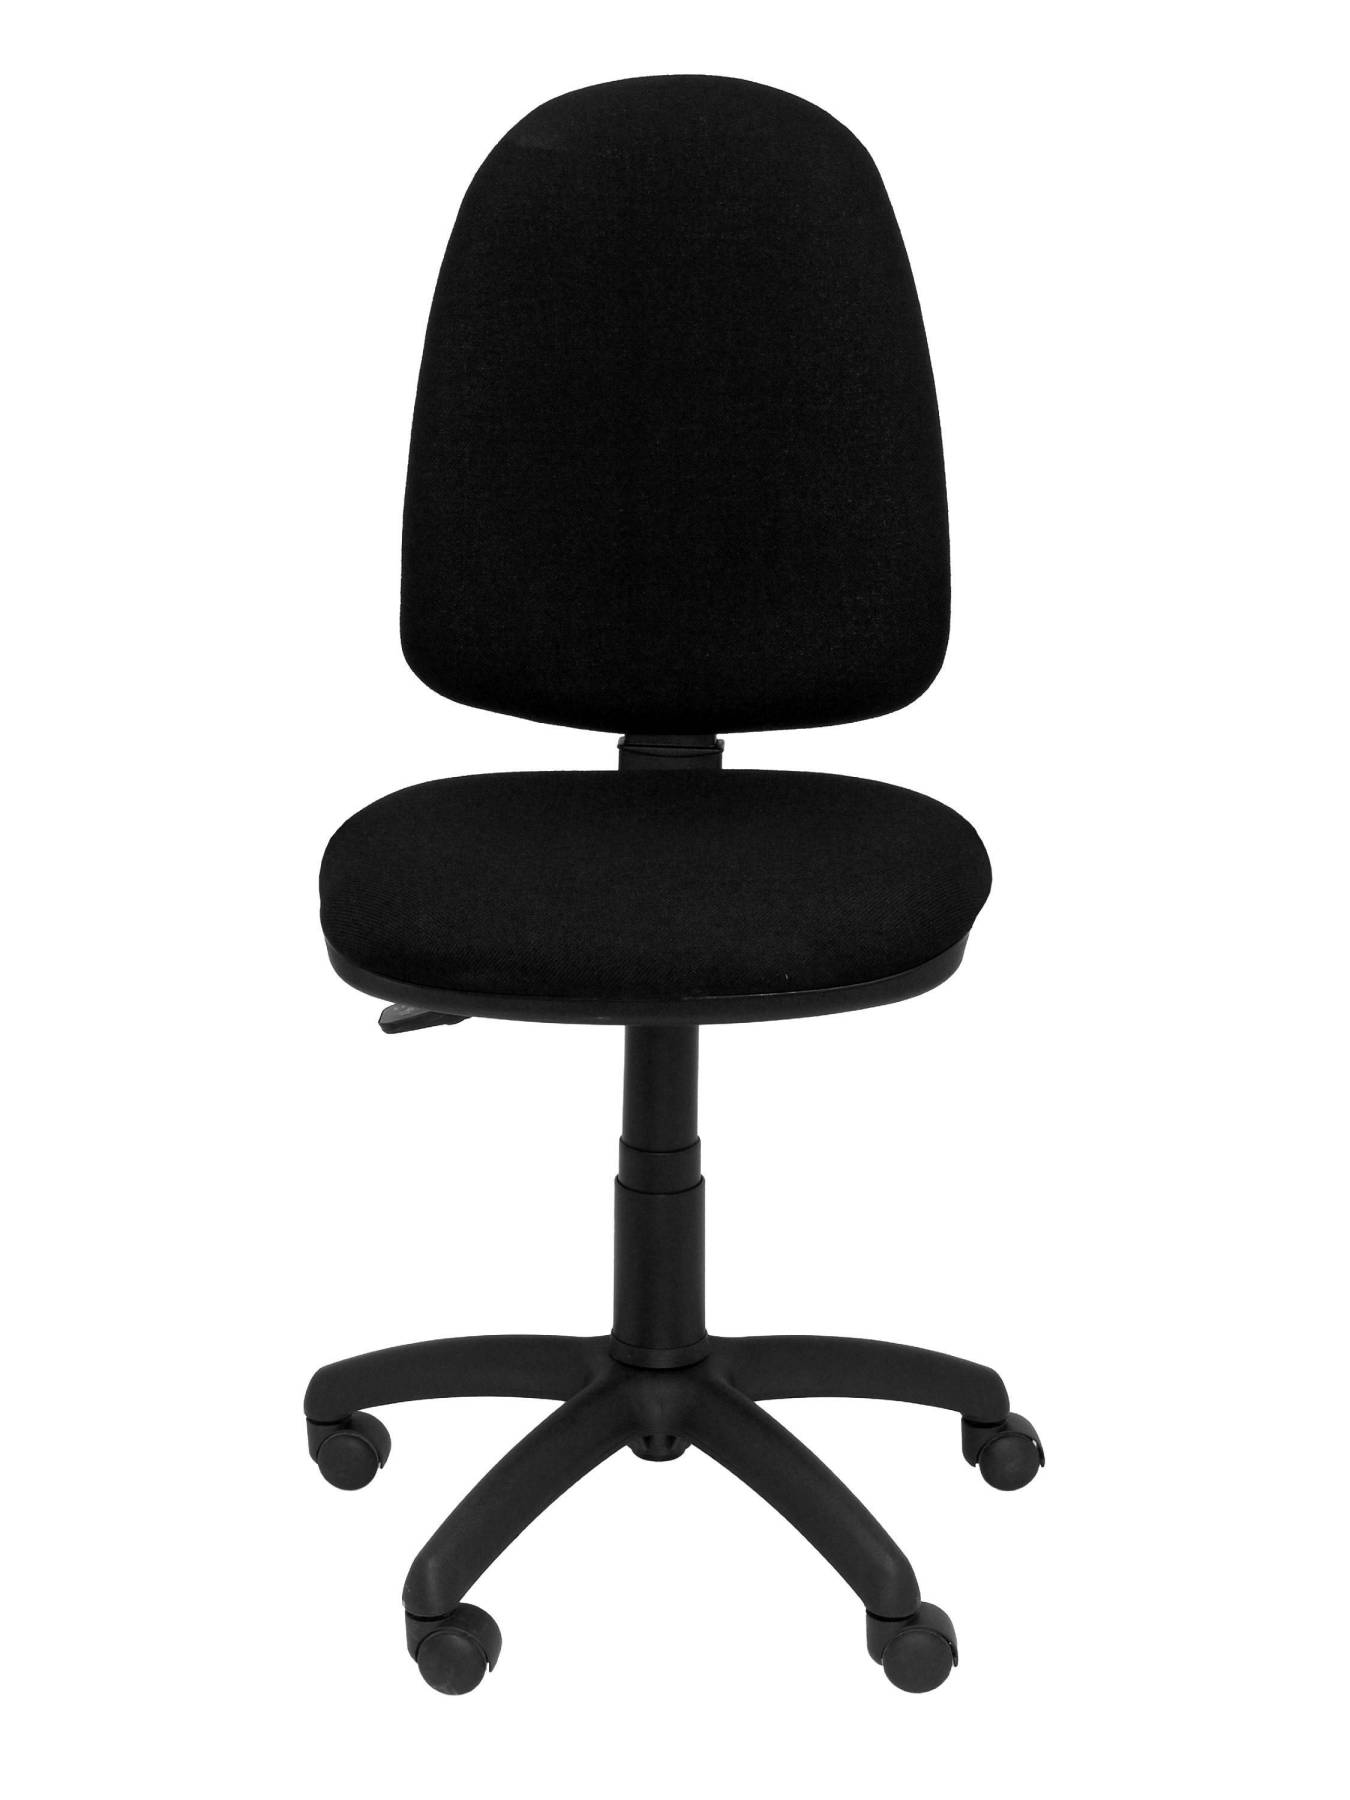 Office Chair With Mechanism's Constant Contact Double Handle And Adjustable Height-Seat And Backrest Tapestry